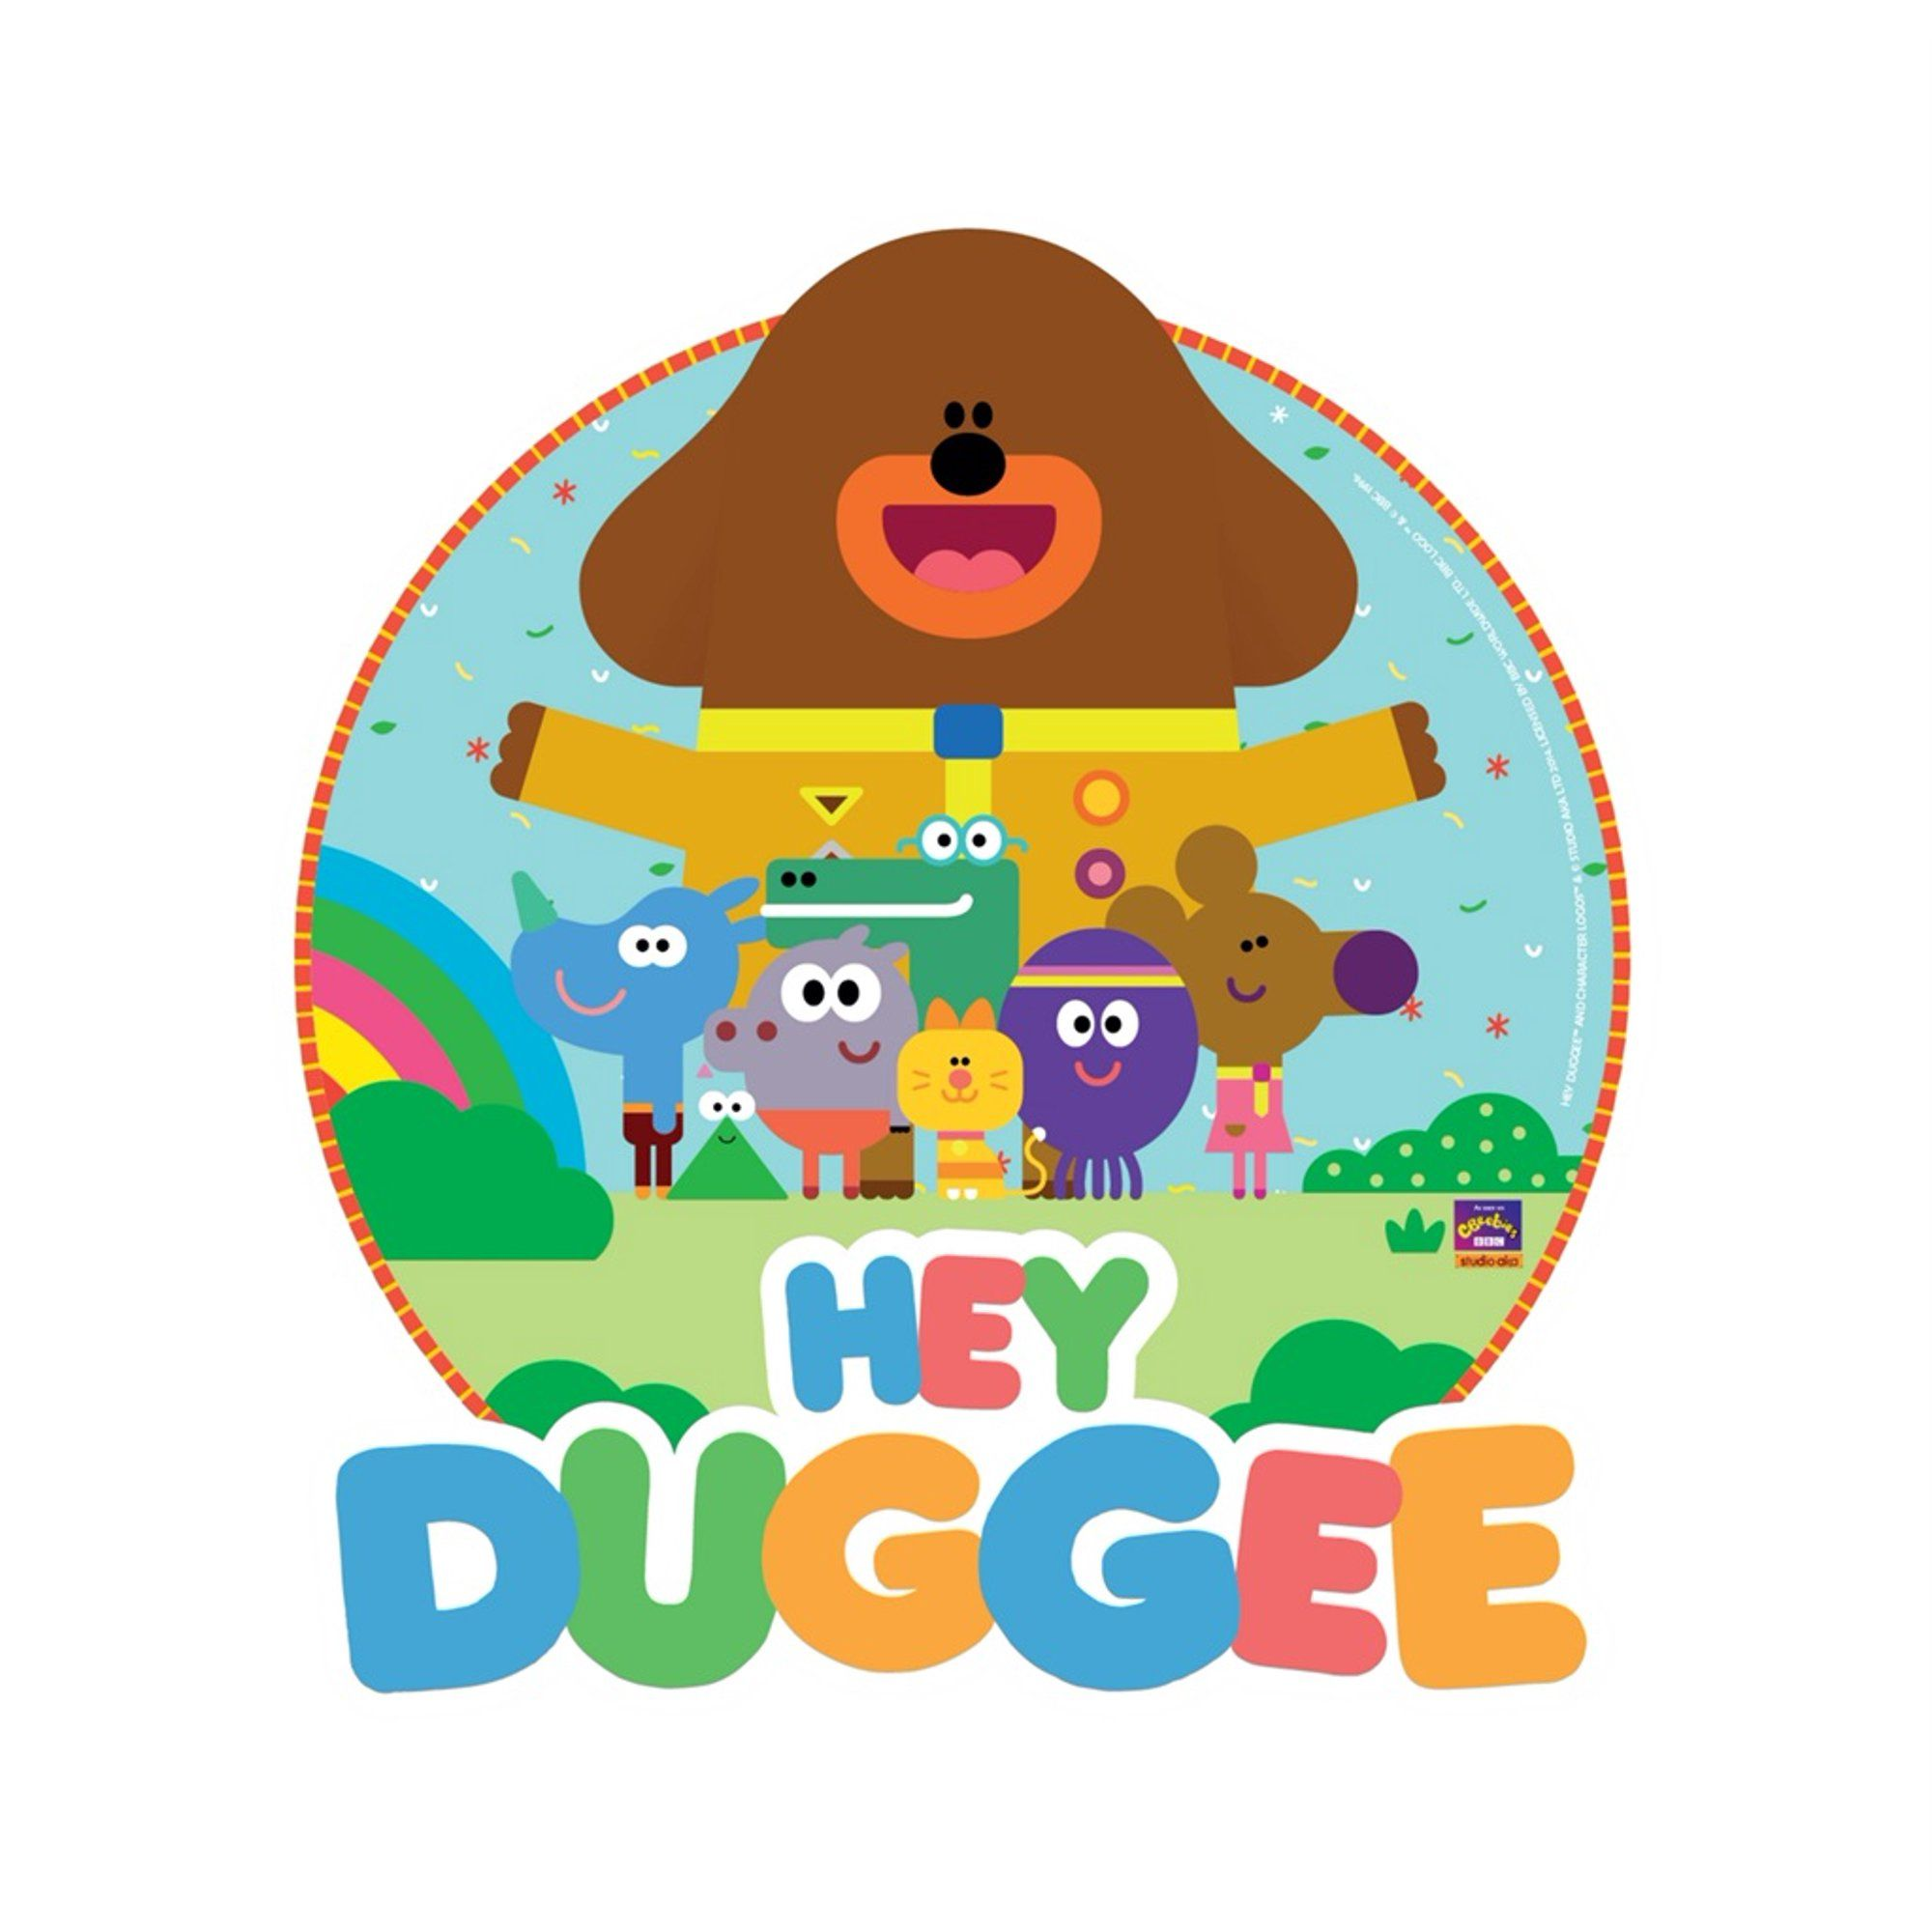 Hey duggee edible birthday cake topper 8 round frosting